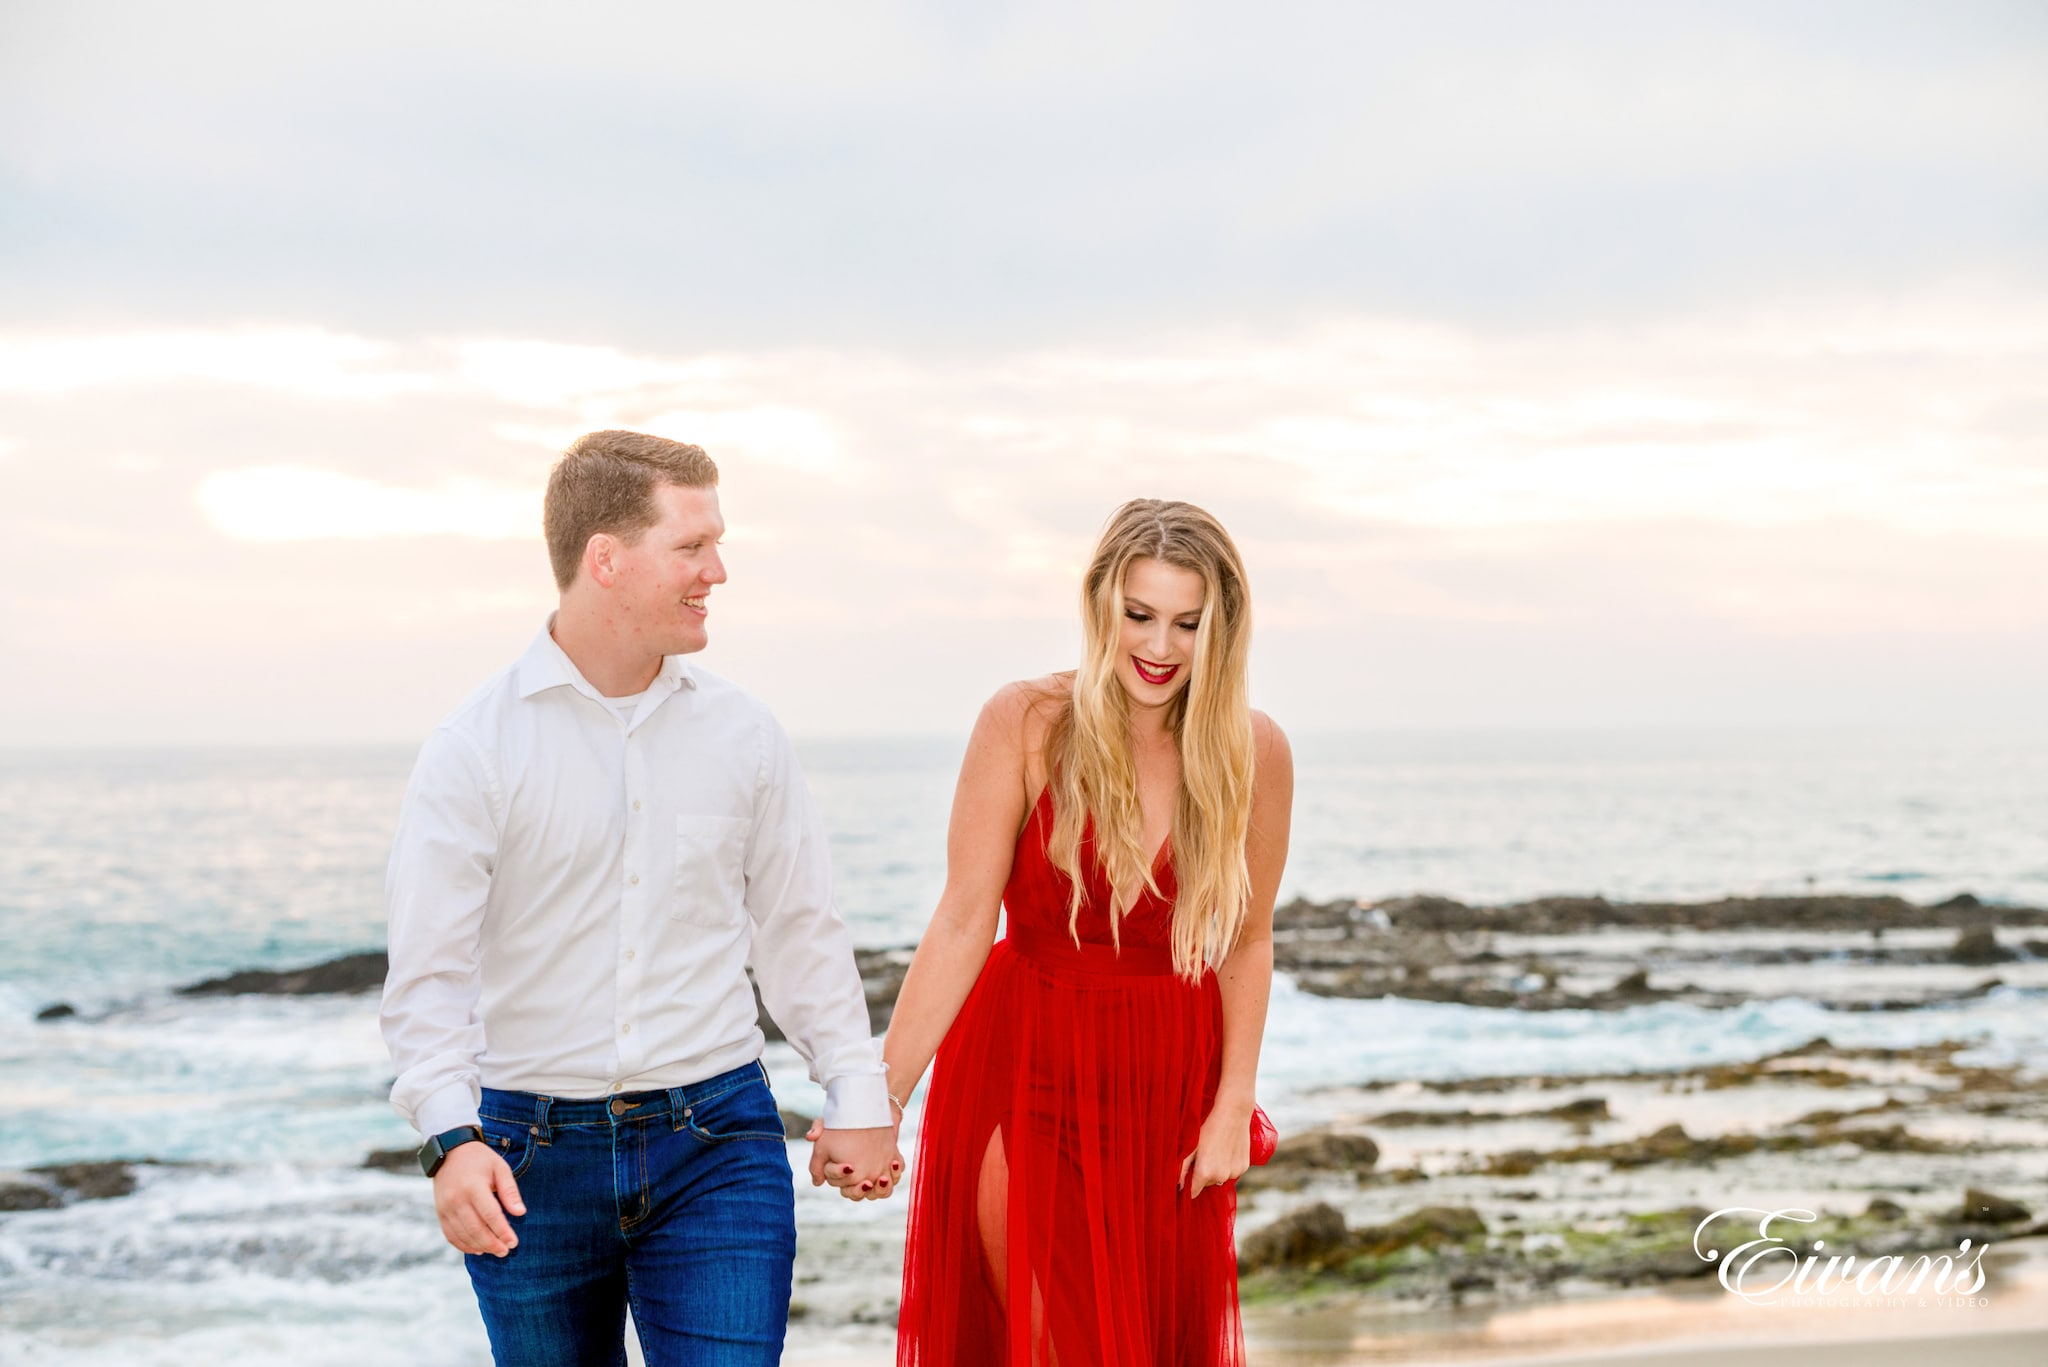 man in white dress shirt and woman in red dress standing on beach during daytime